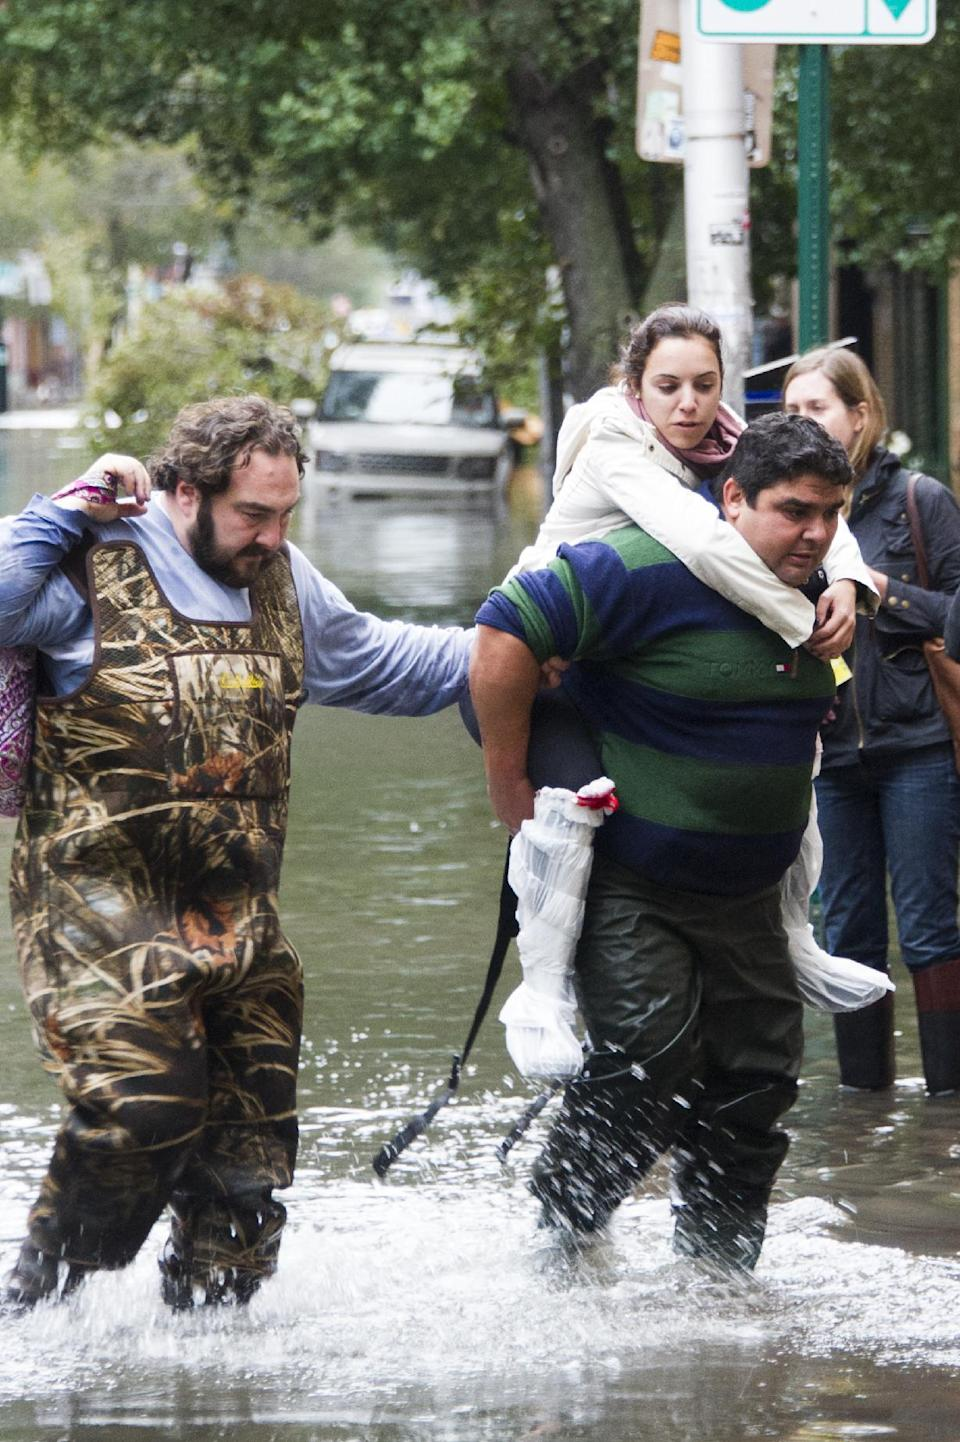 A resident is carried through floodwaters in Hoboken, N.J. on Tuesday, Oct. 30, 2012 after superstorm Sandy made landfall in New Jersey Monday evening. (AP Photo/Charles Sykes)